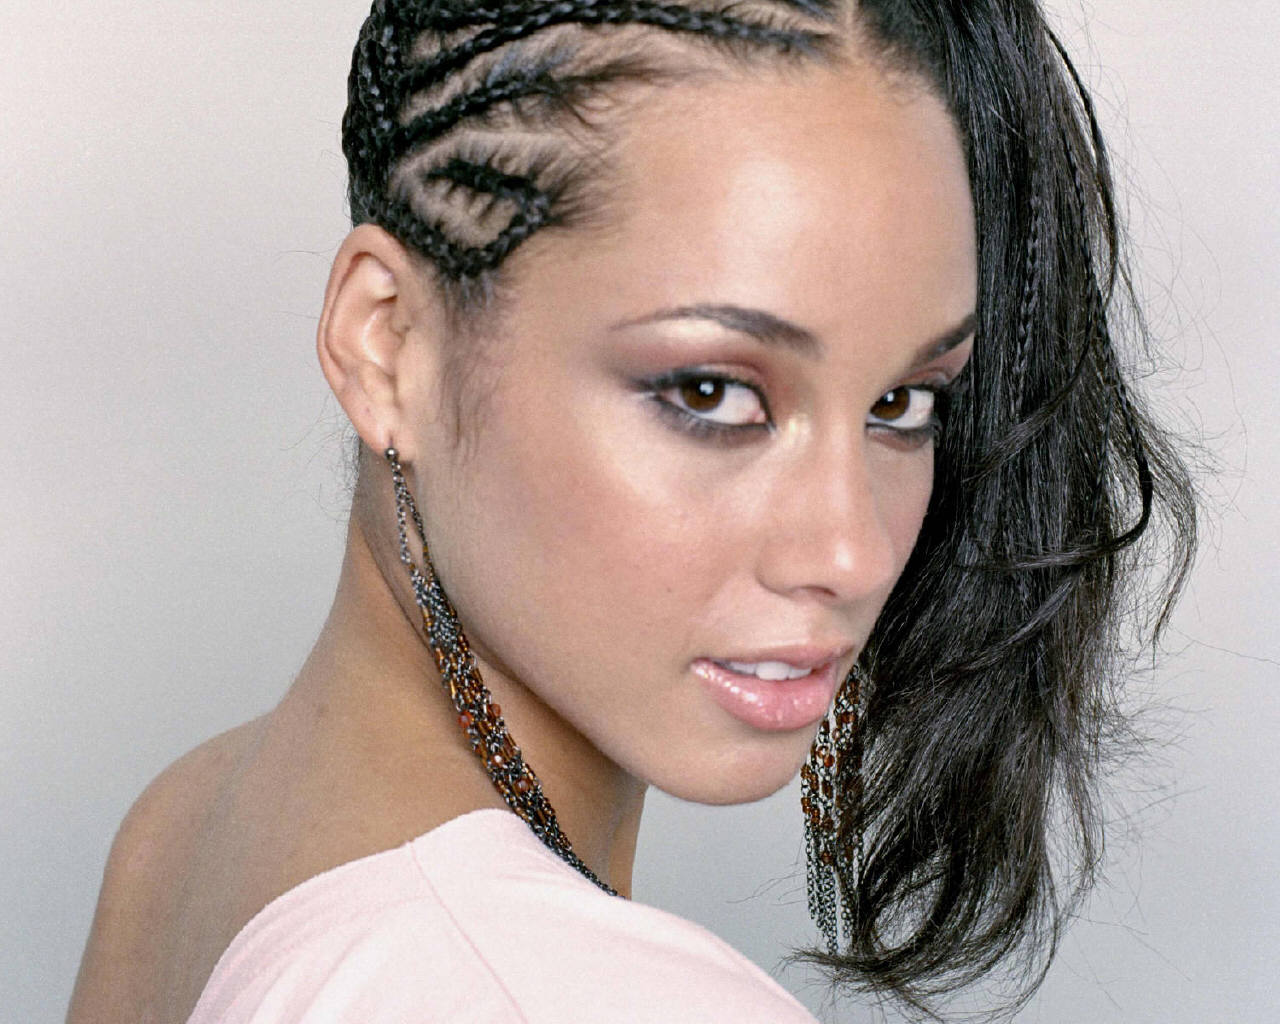 L Hairstyle: Alicia Keys Images Alicia Keys HD Wallpaper And Background